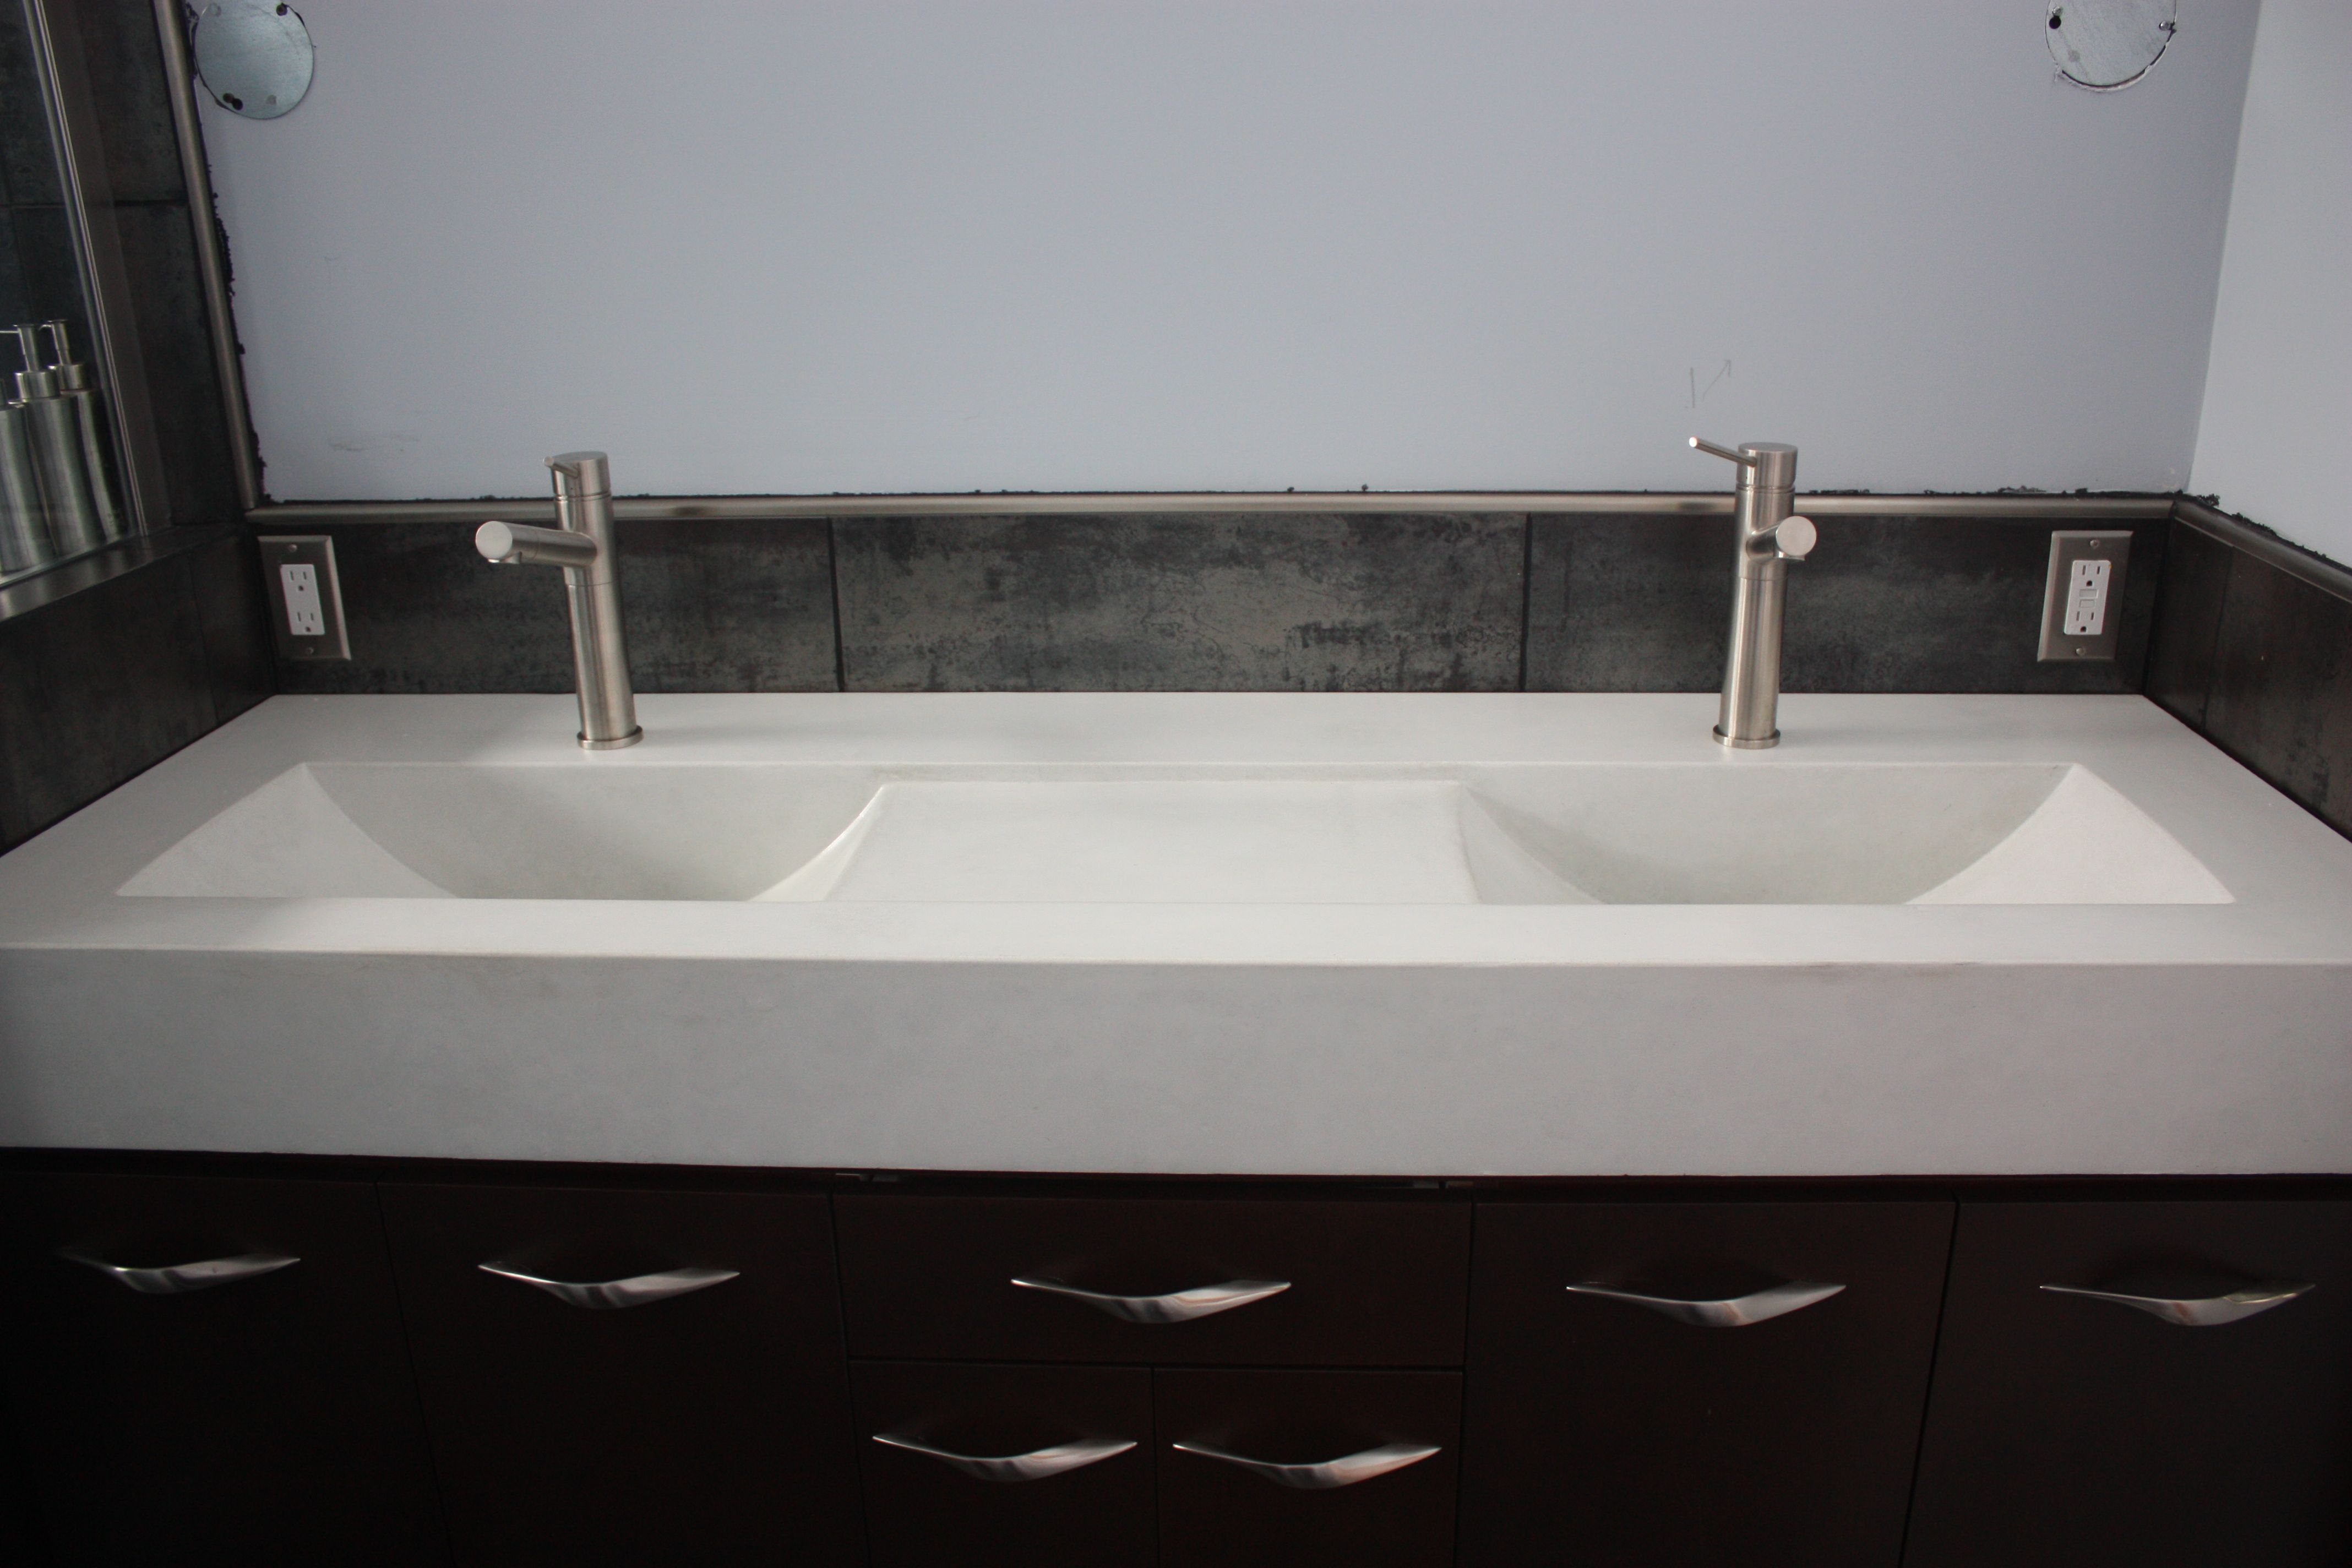 A double eclipse concrete vanity top the recessed area between the sinks is a cool